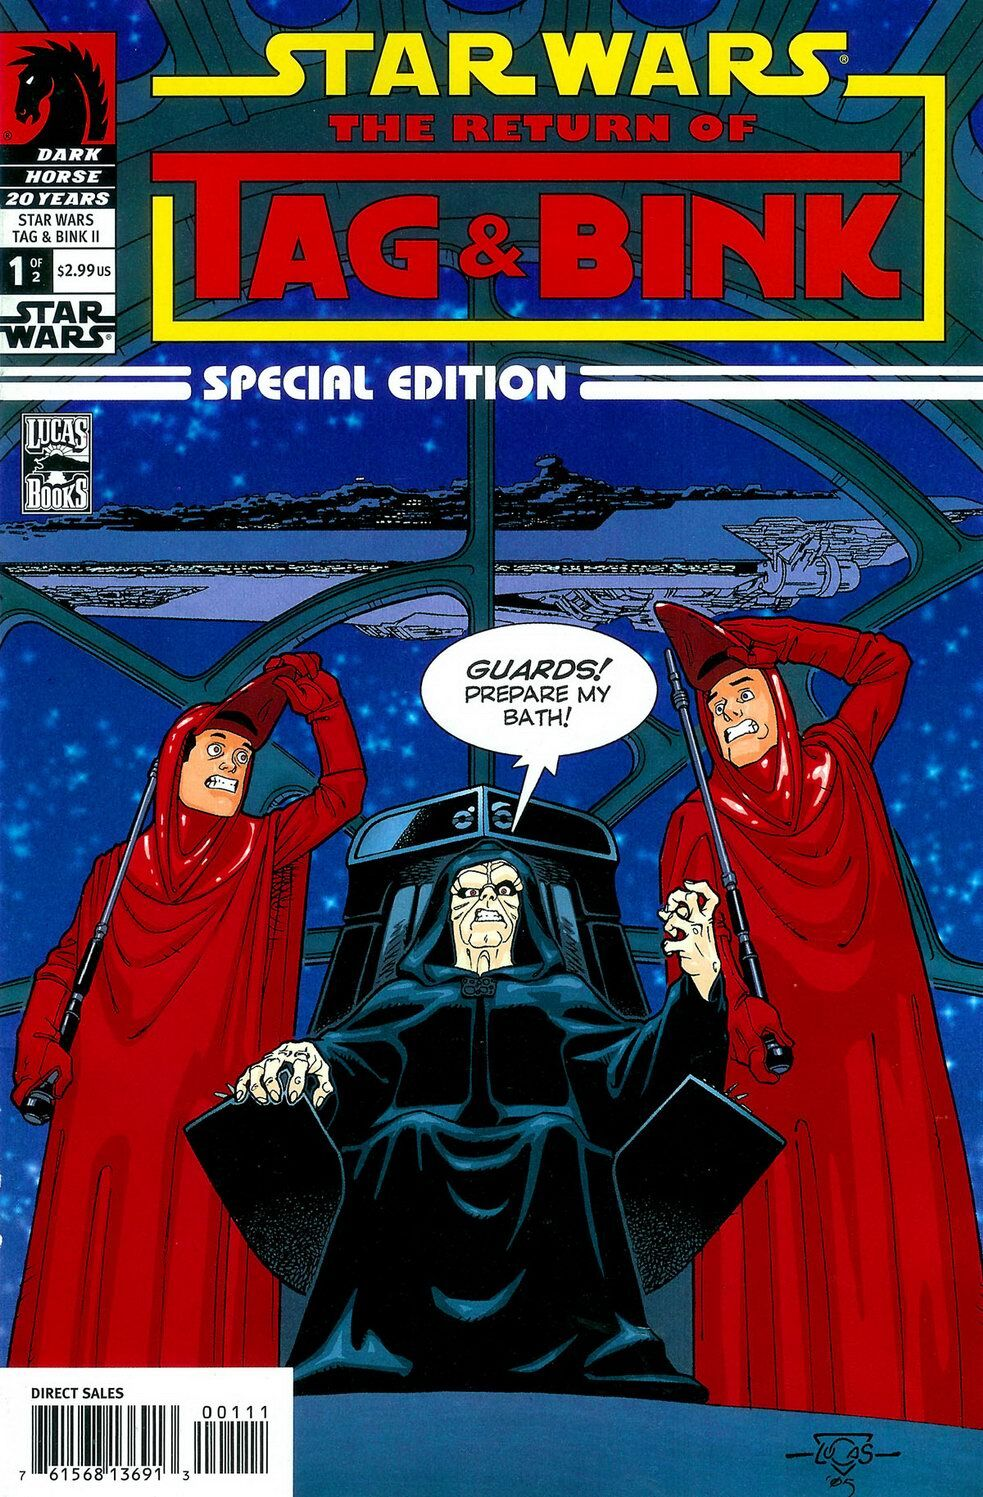 Star Wars: The Return of Tag and Bink Special Edition 1